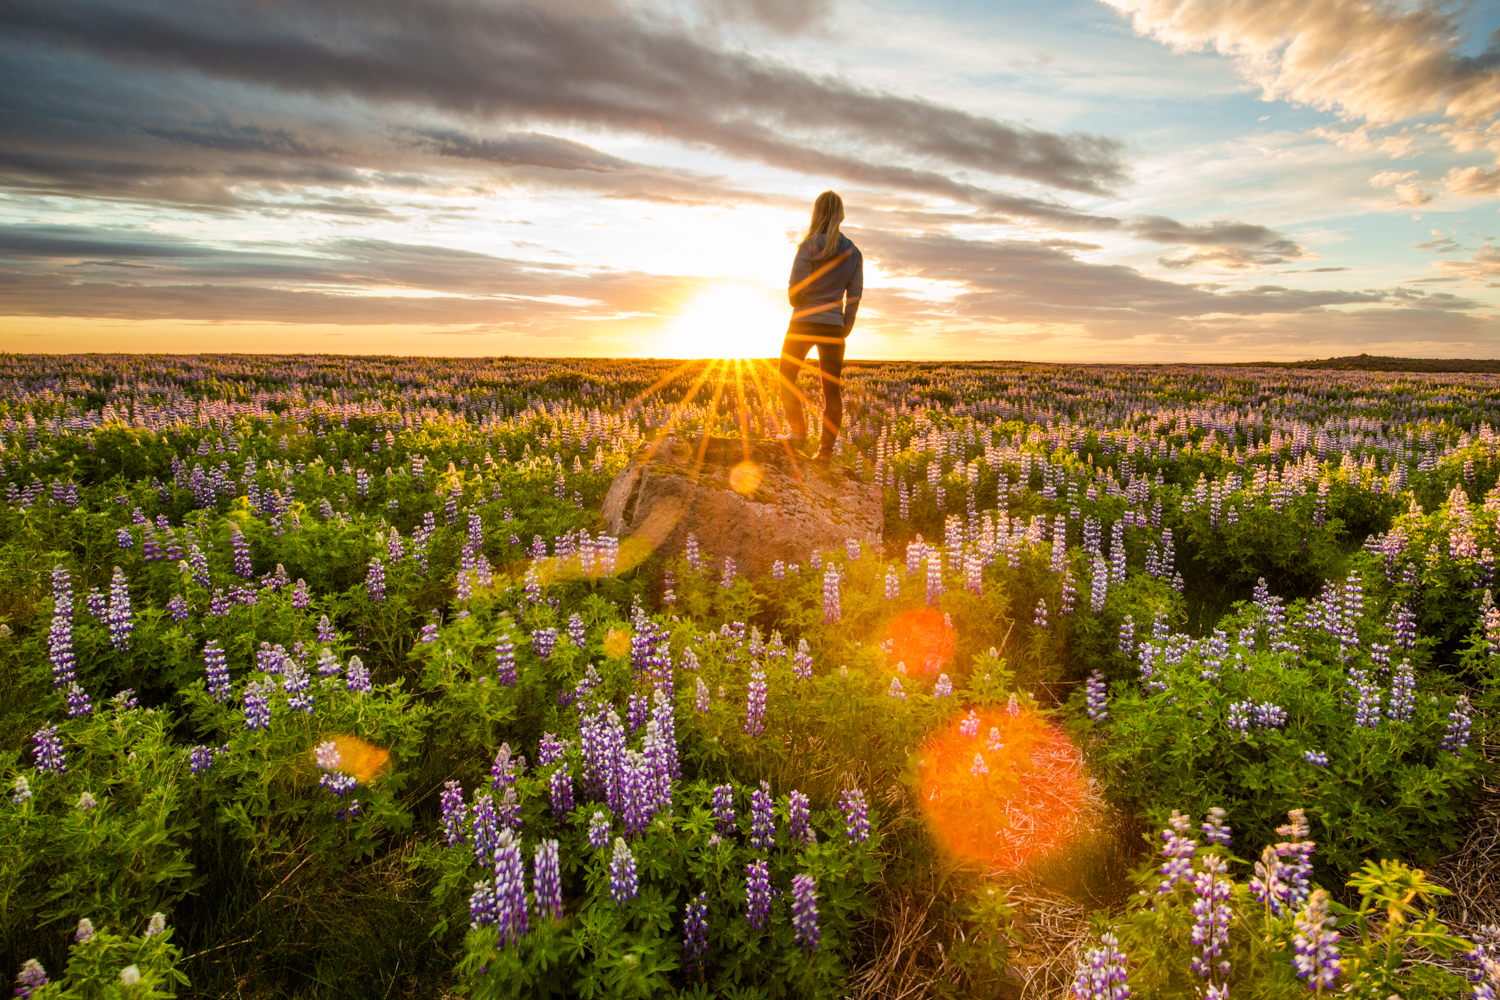 Fields of lupine that go on forever under a midnight sun.